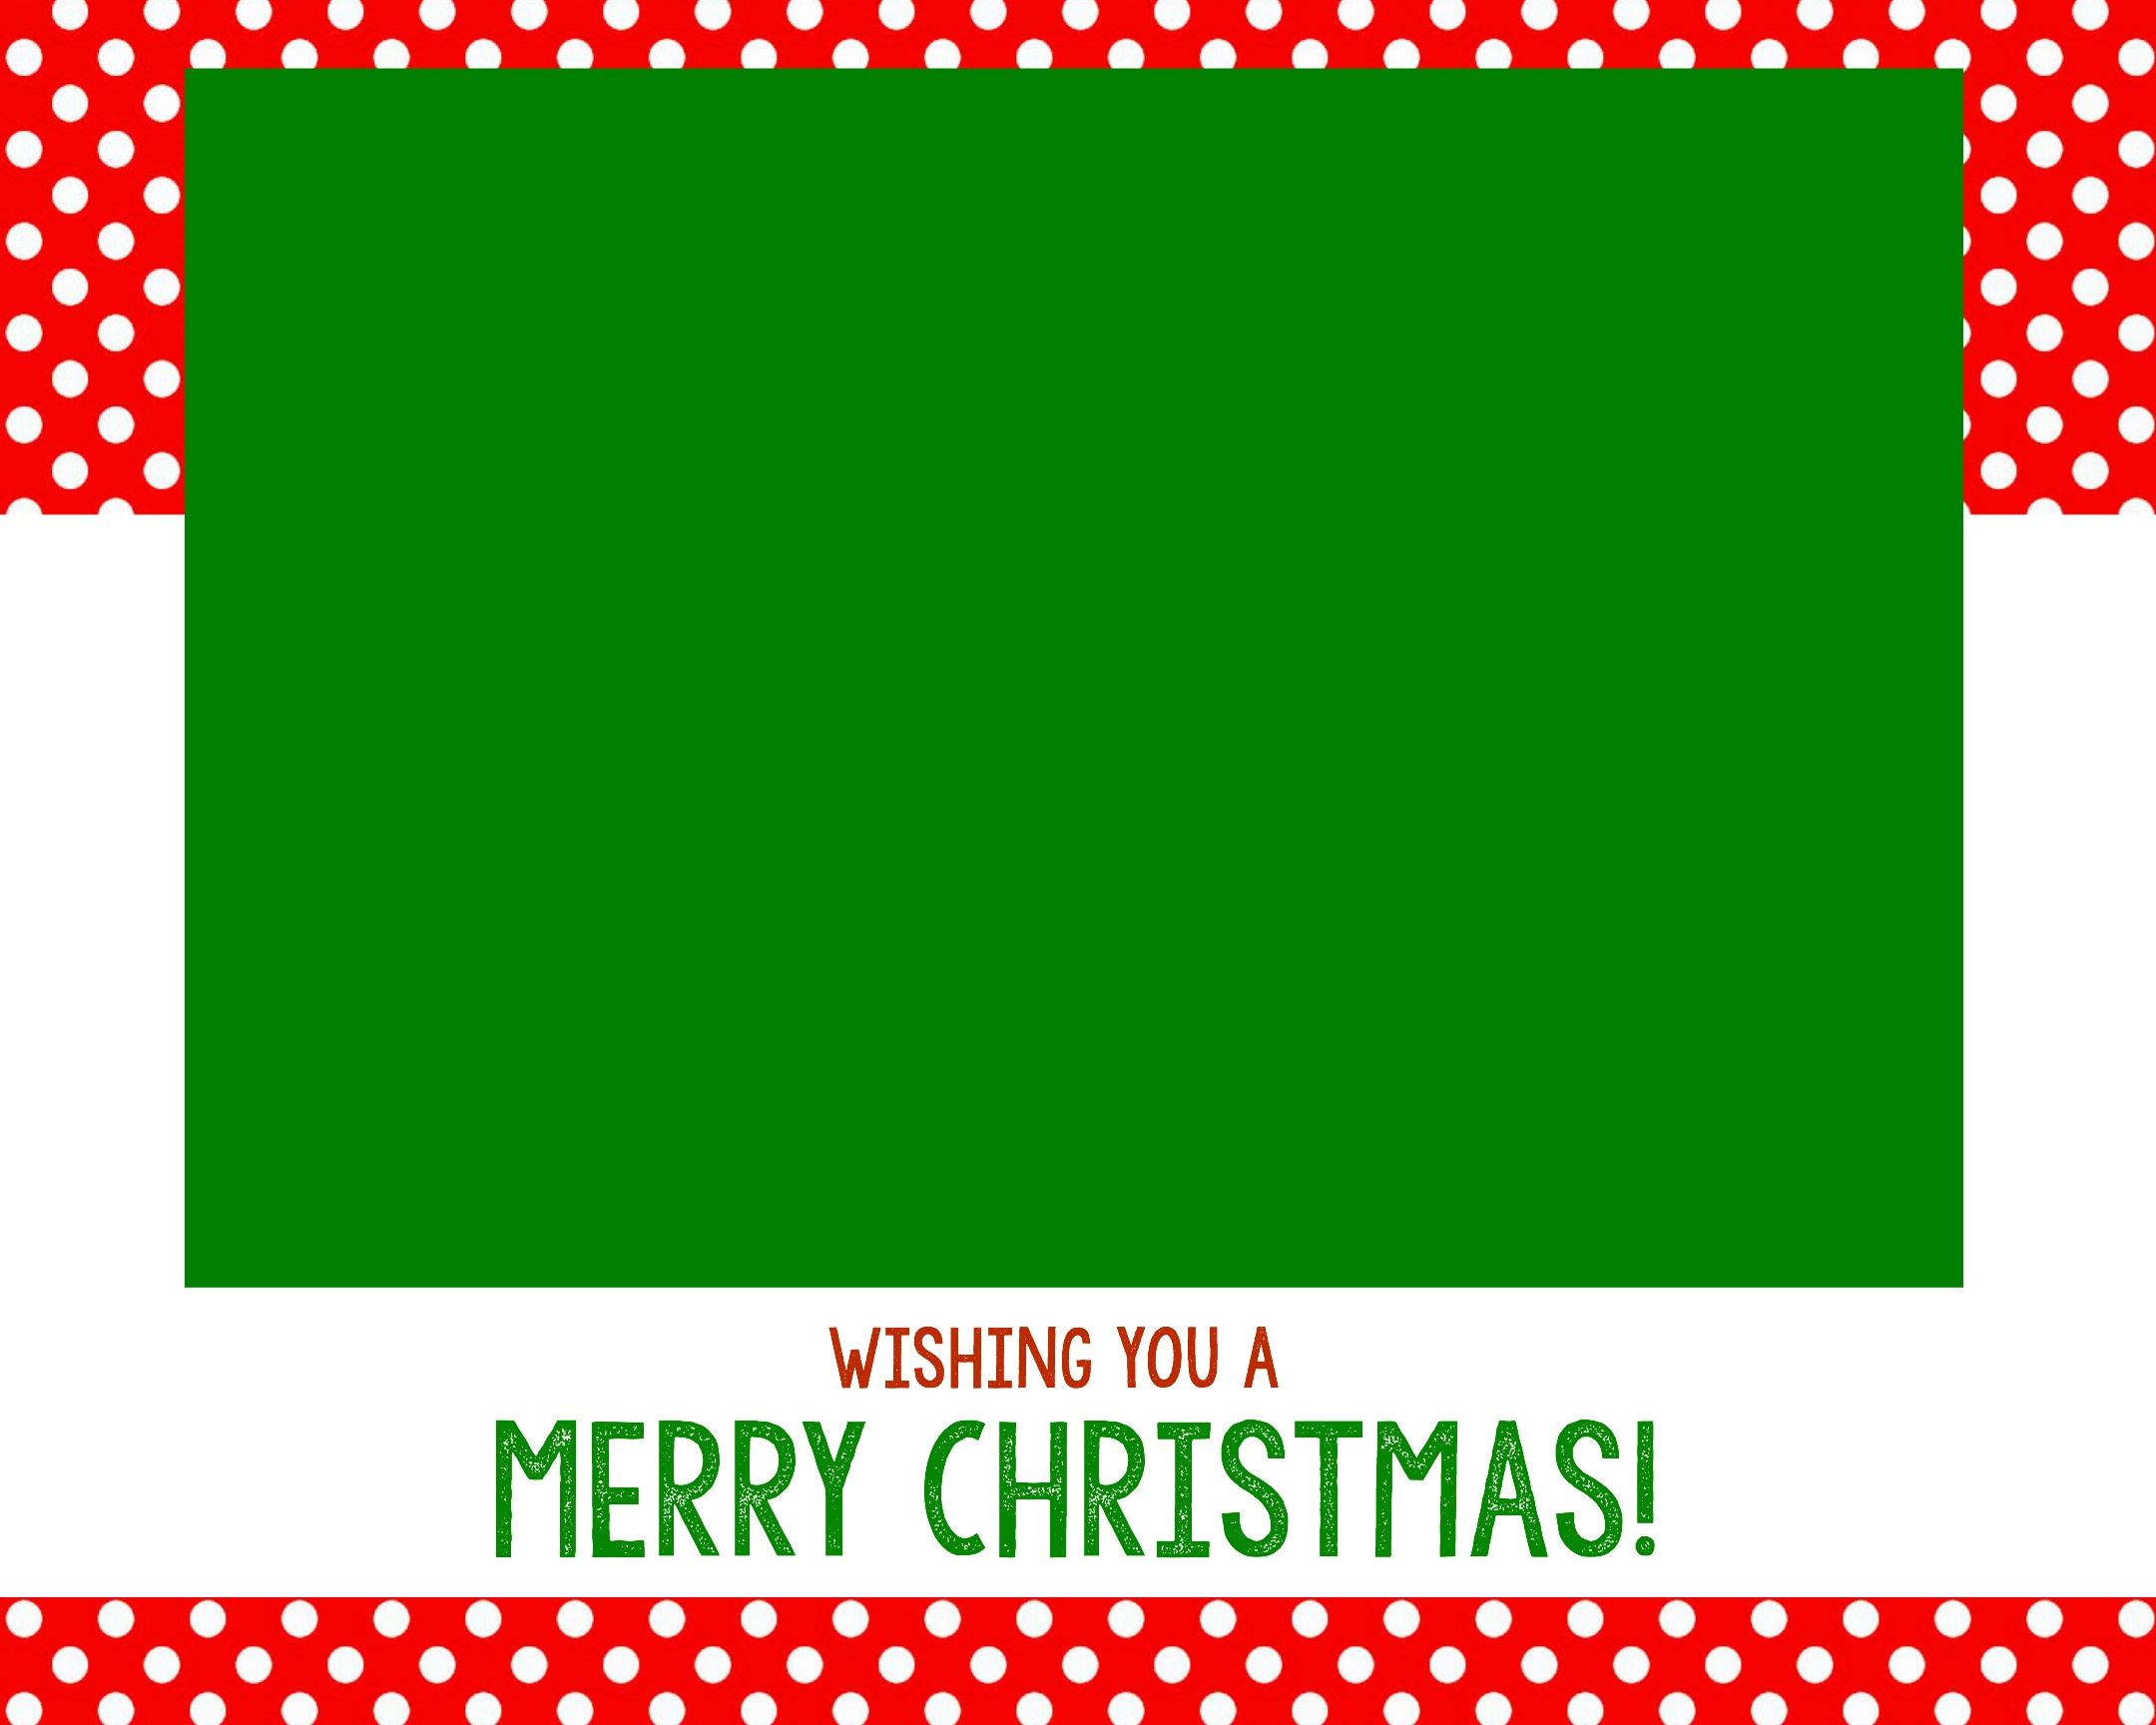 Christmas Photocard Template - Kaza.psstech.co - Free Online Christmas Photo Card Maker Printable